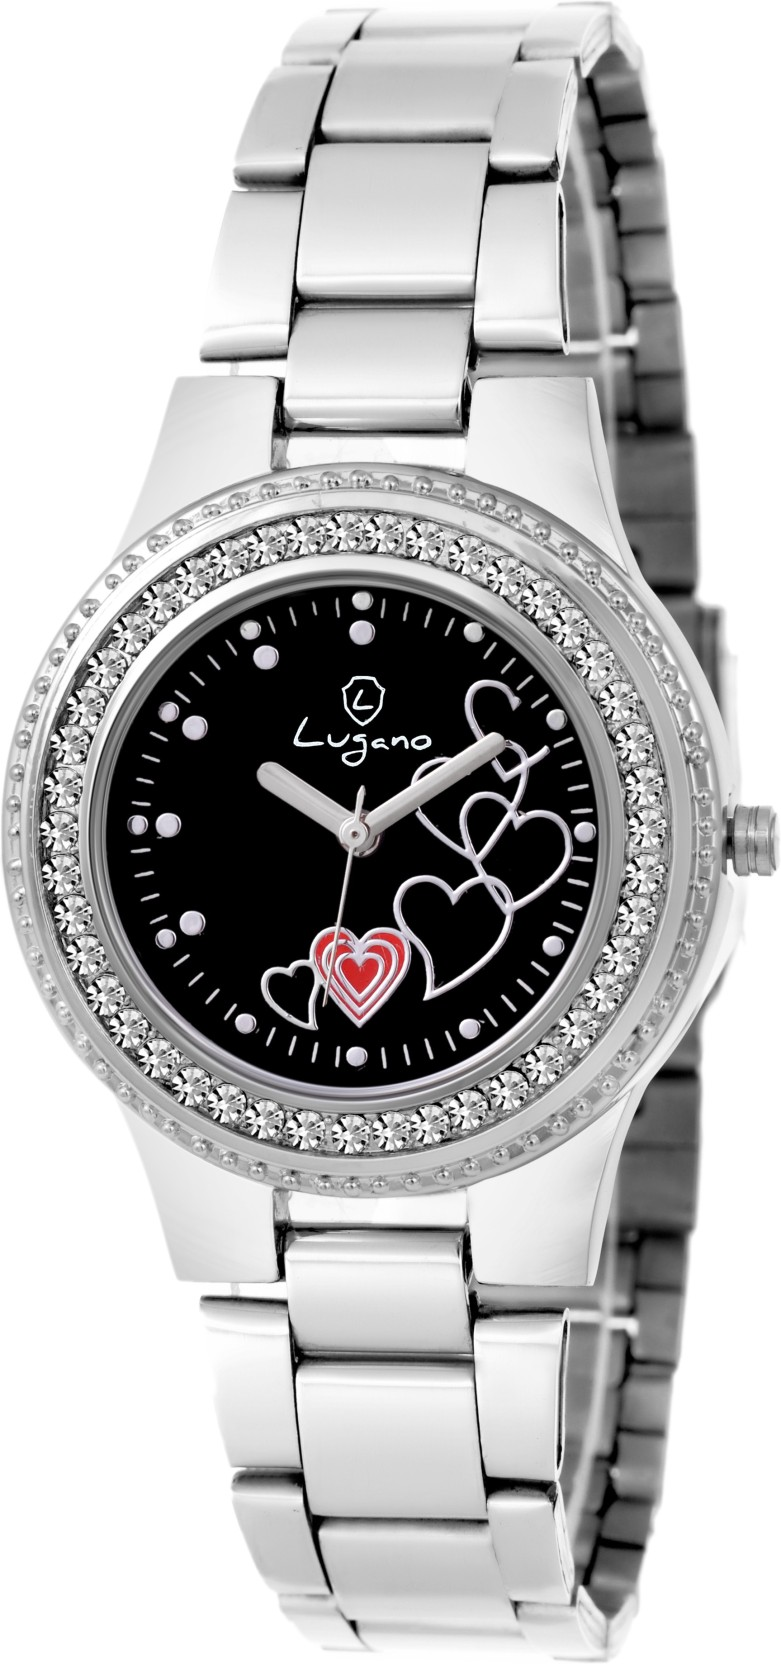 790f33ed706 Lugano LG 2046 Gem Studded with Black Heart Dial Watch - For Women ...